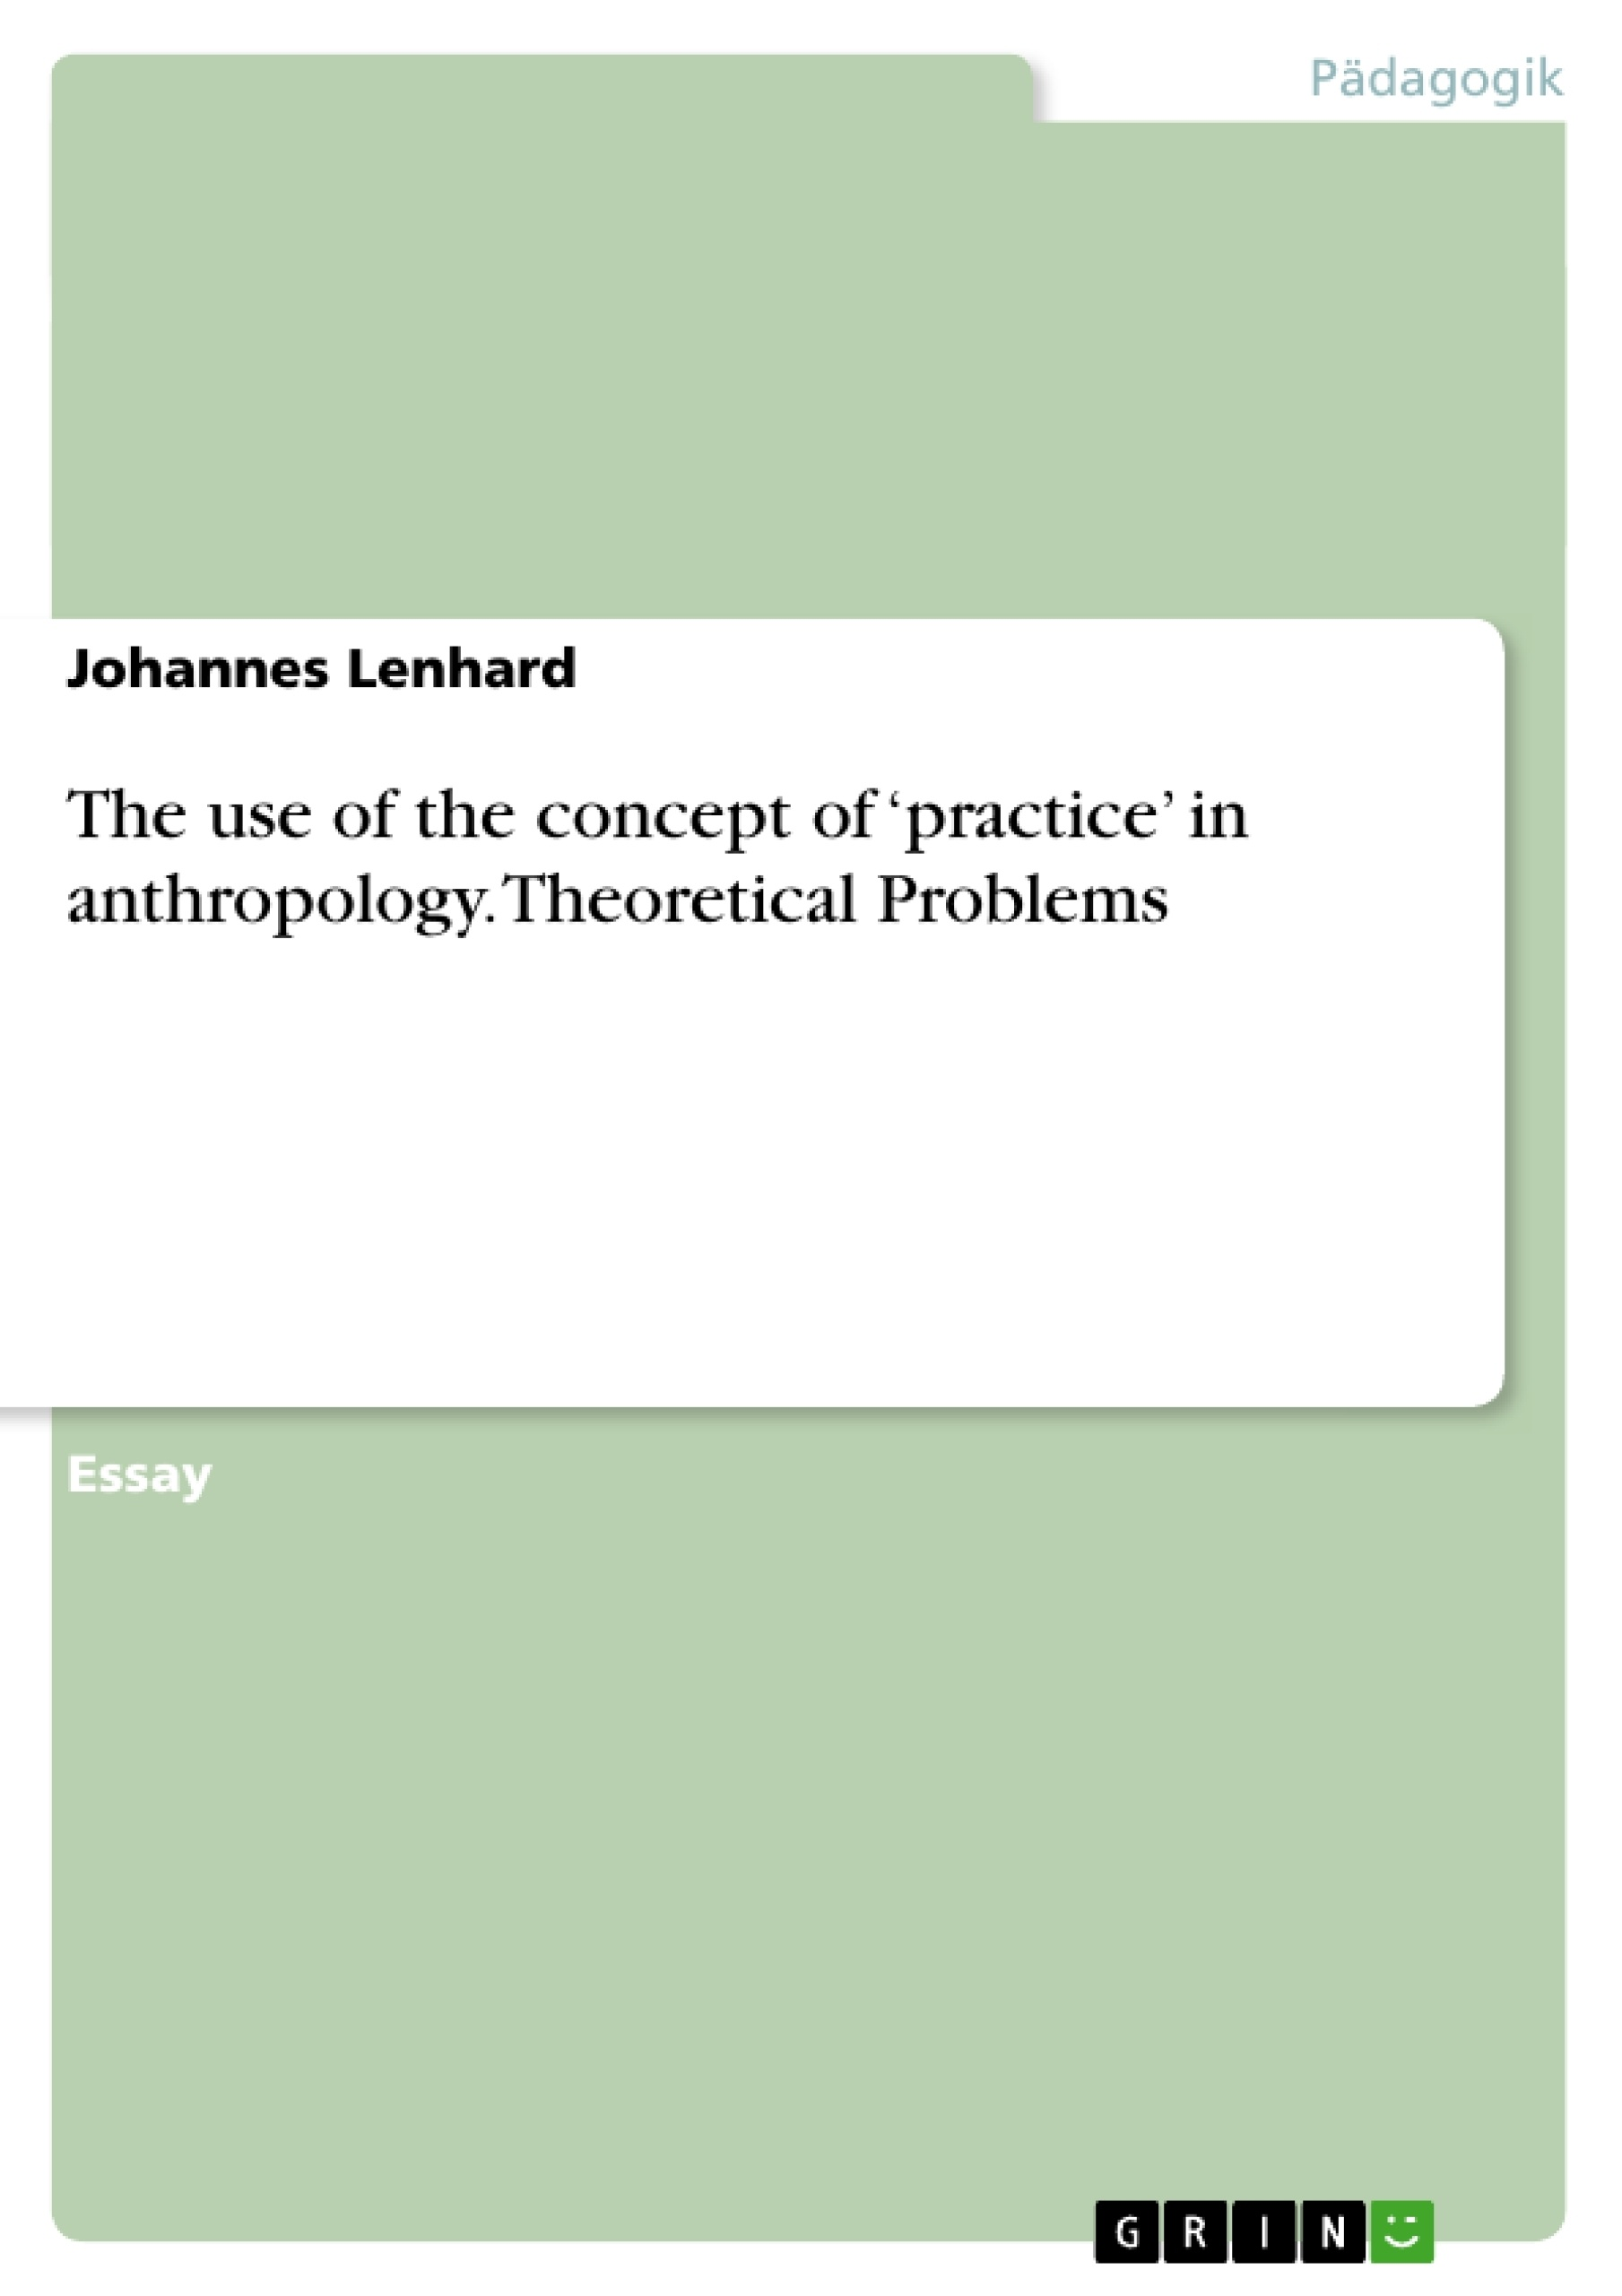 Titel: The use of the concept of 'practice' in anthropology. Theoretical Problems